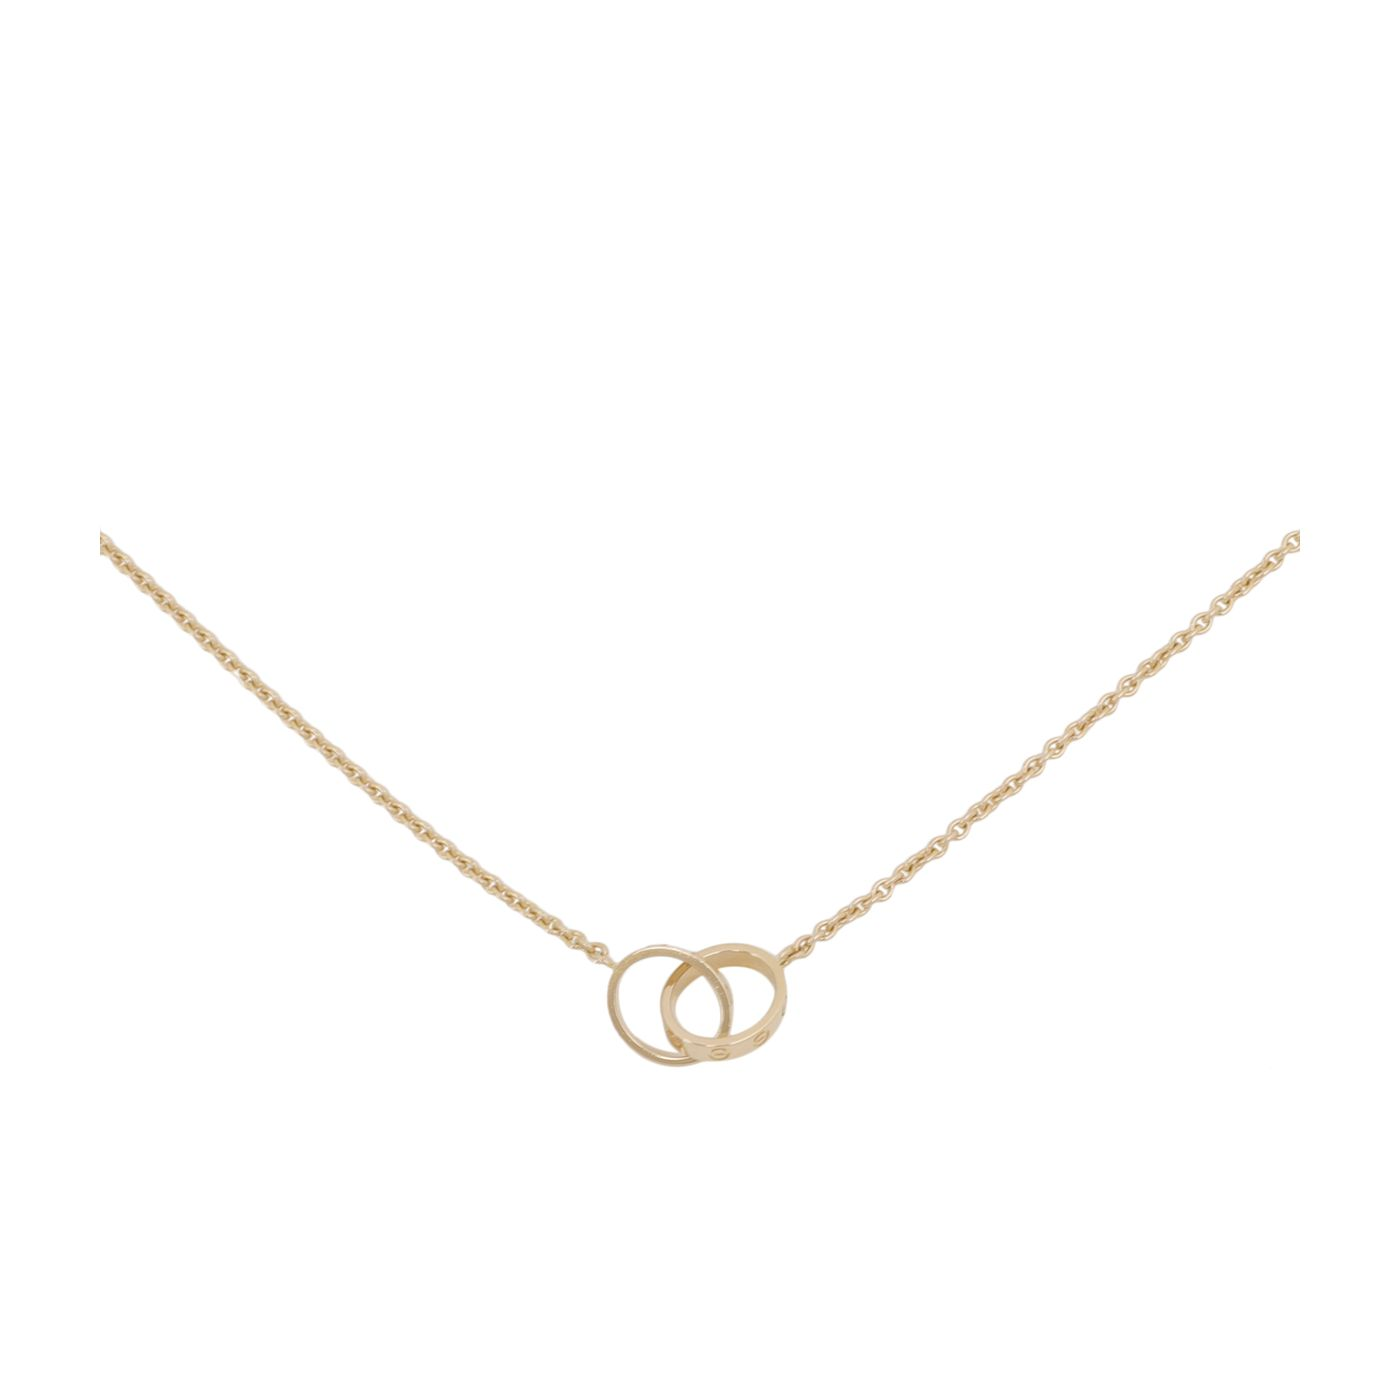 Cartier 18K Yellow Gold Love Necklace